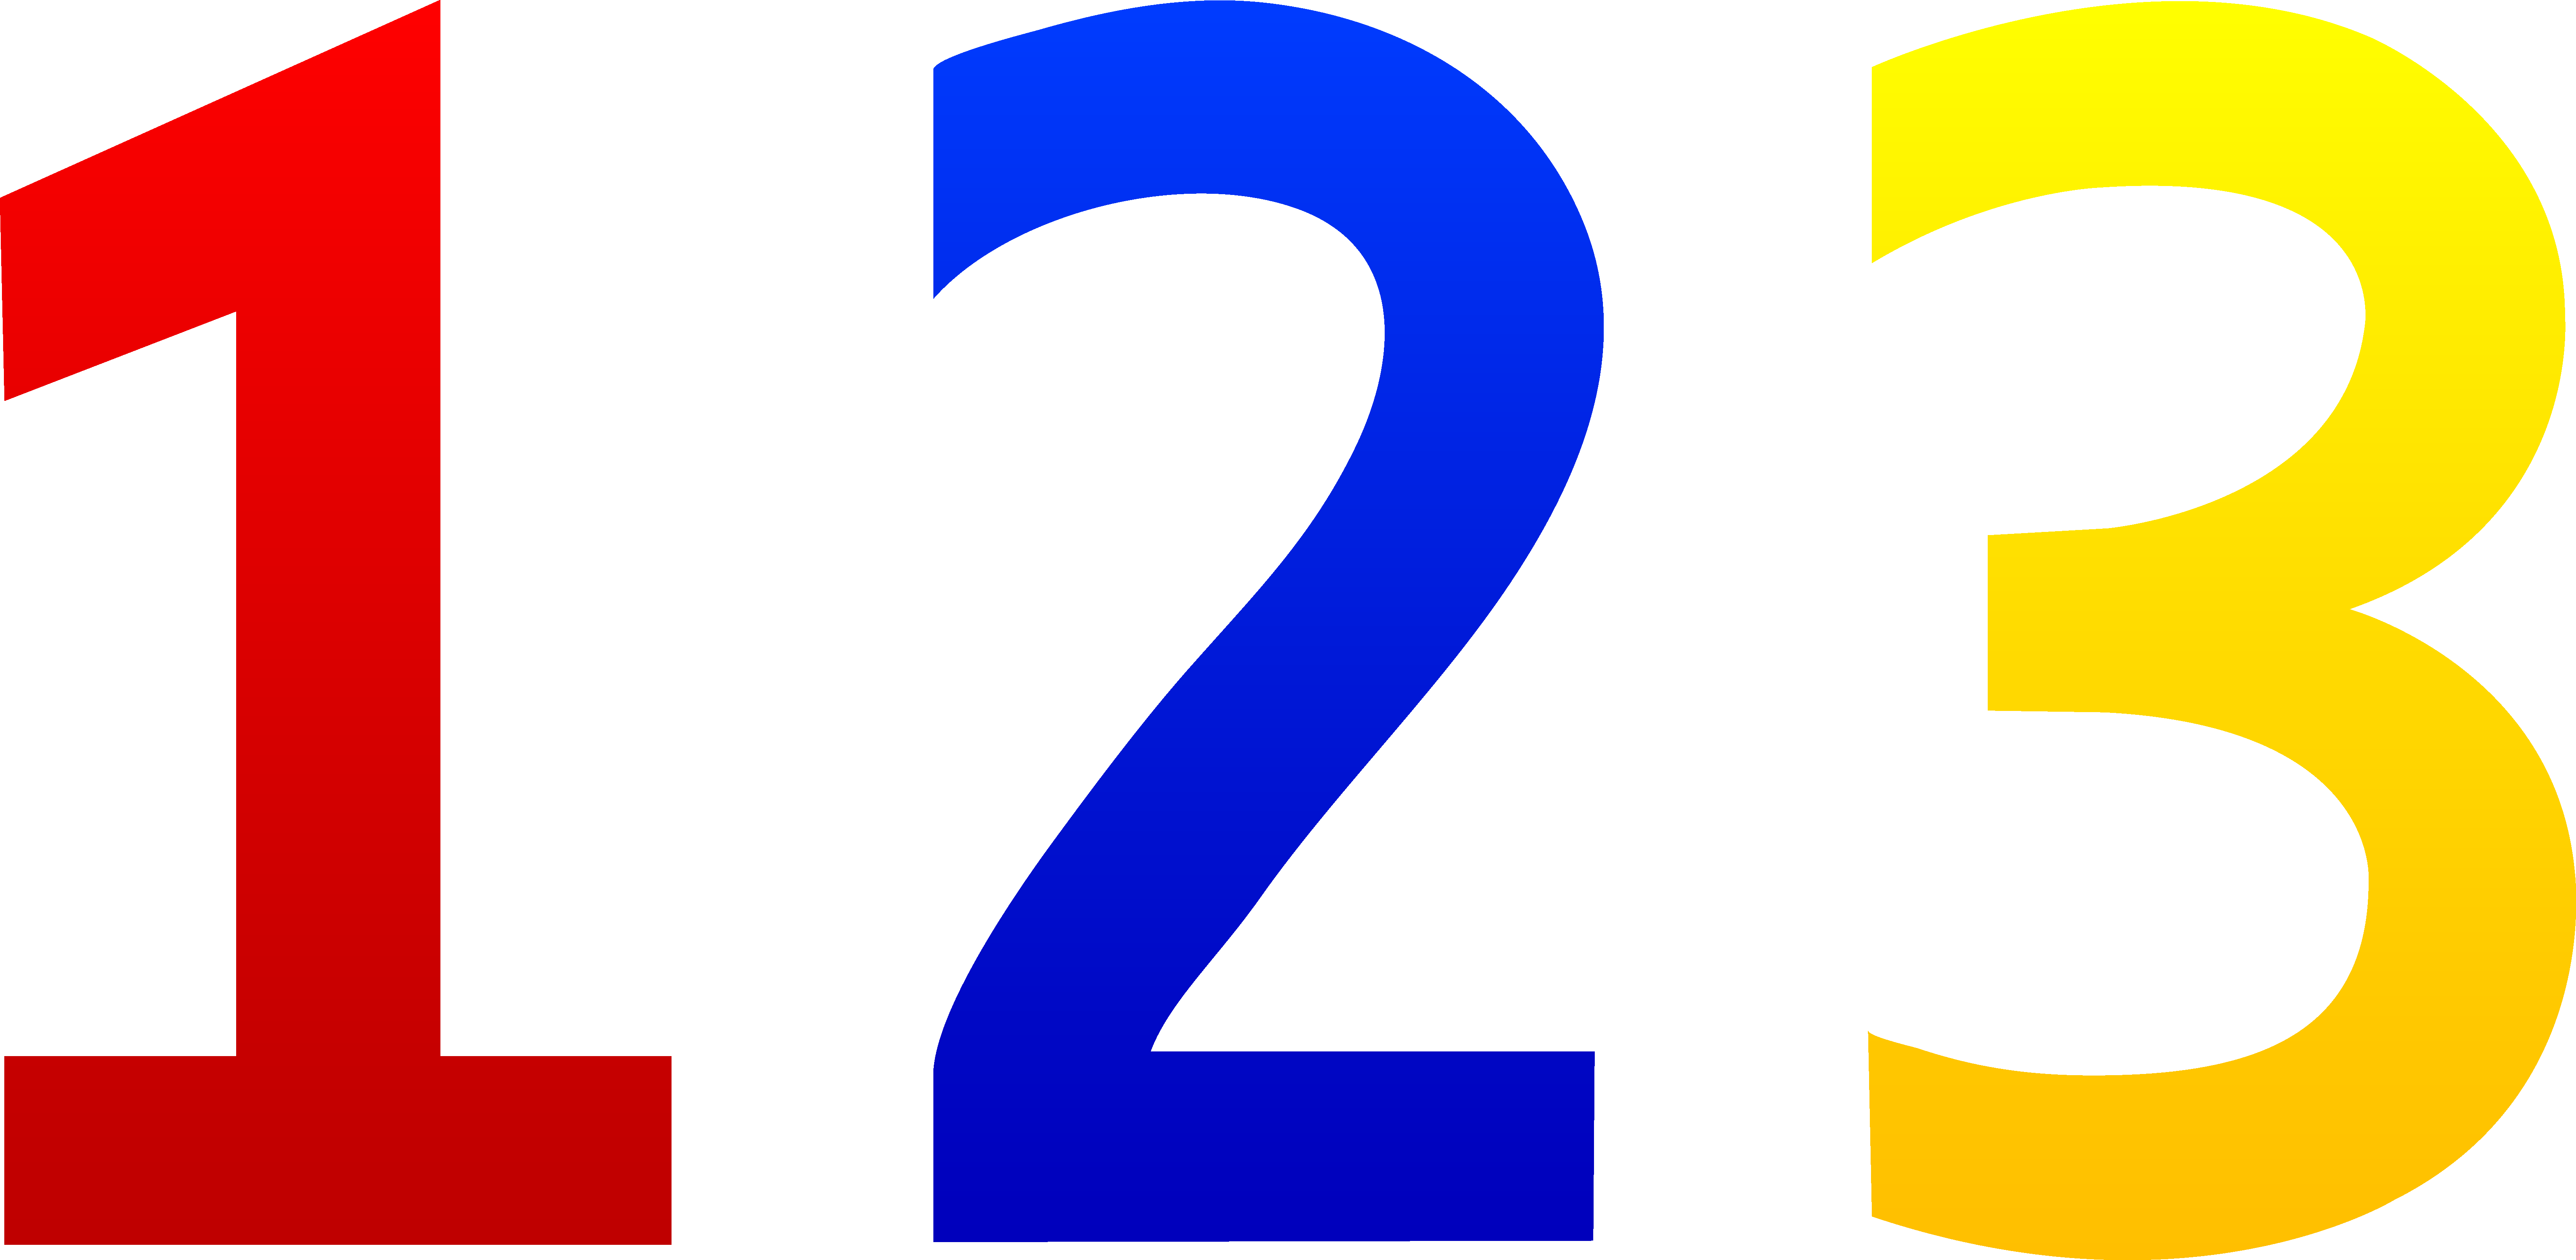 2 clipart single number.